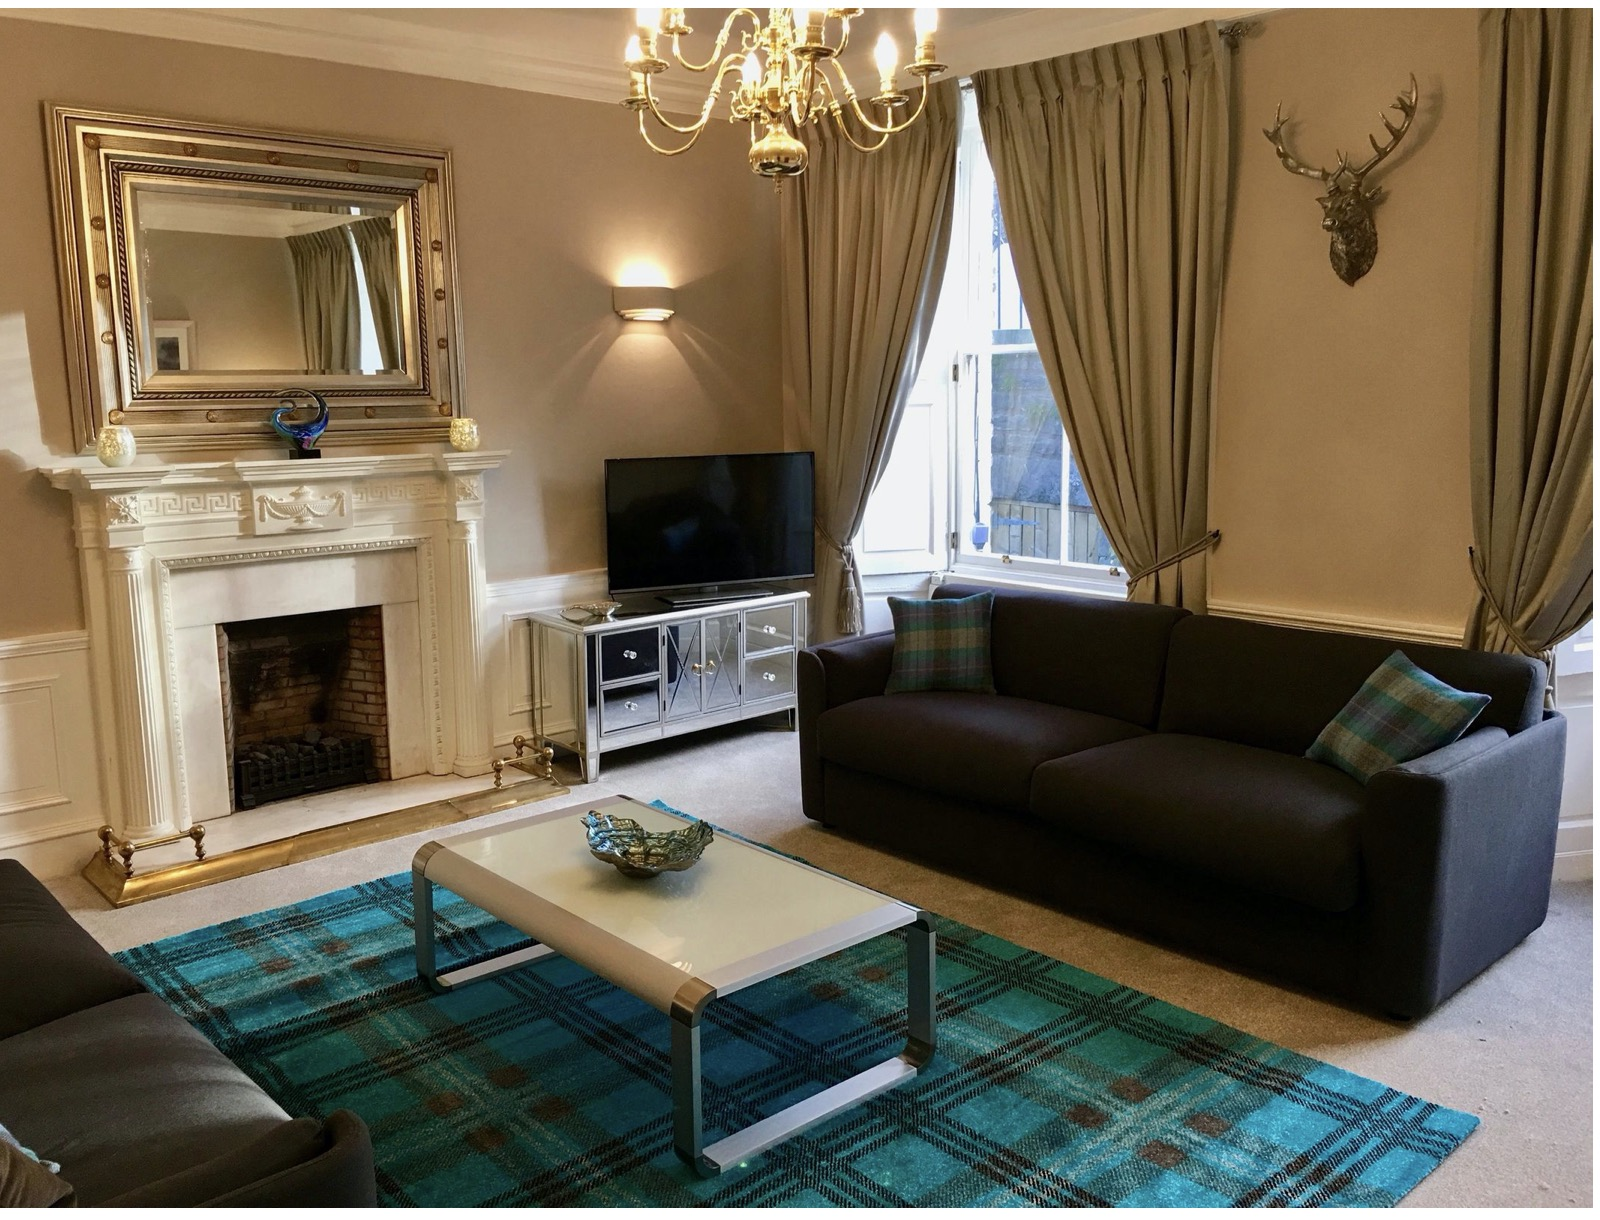 LUXURY 3 BEDROOMS EDINBURGH